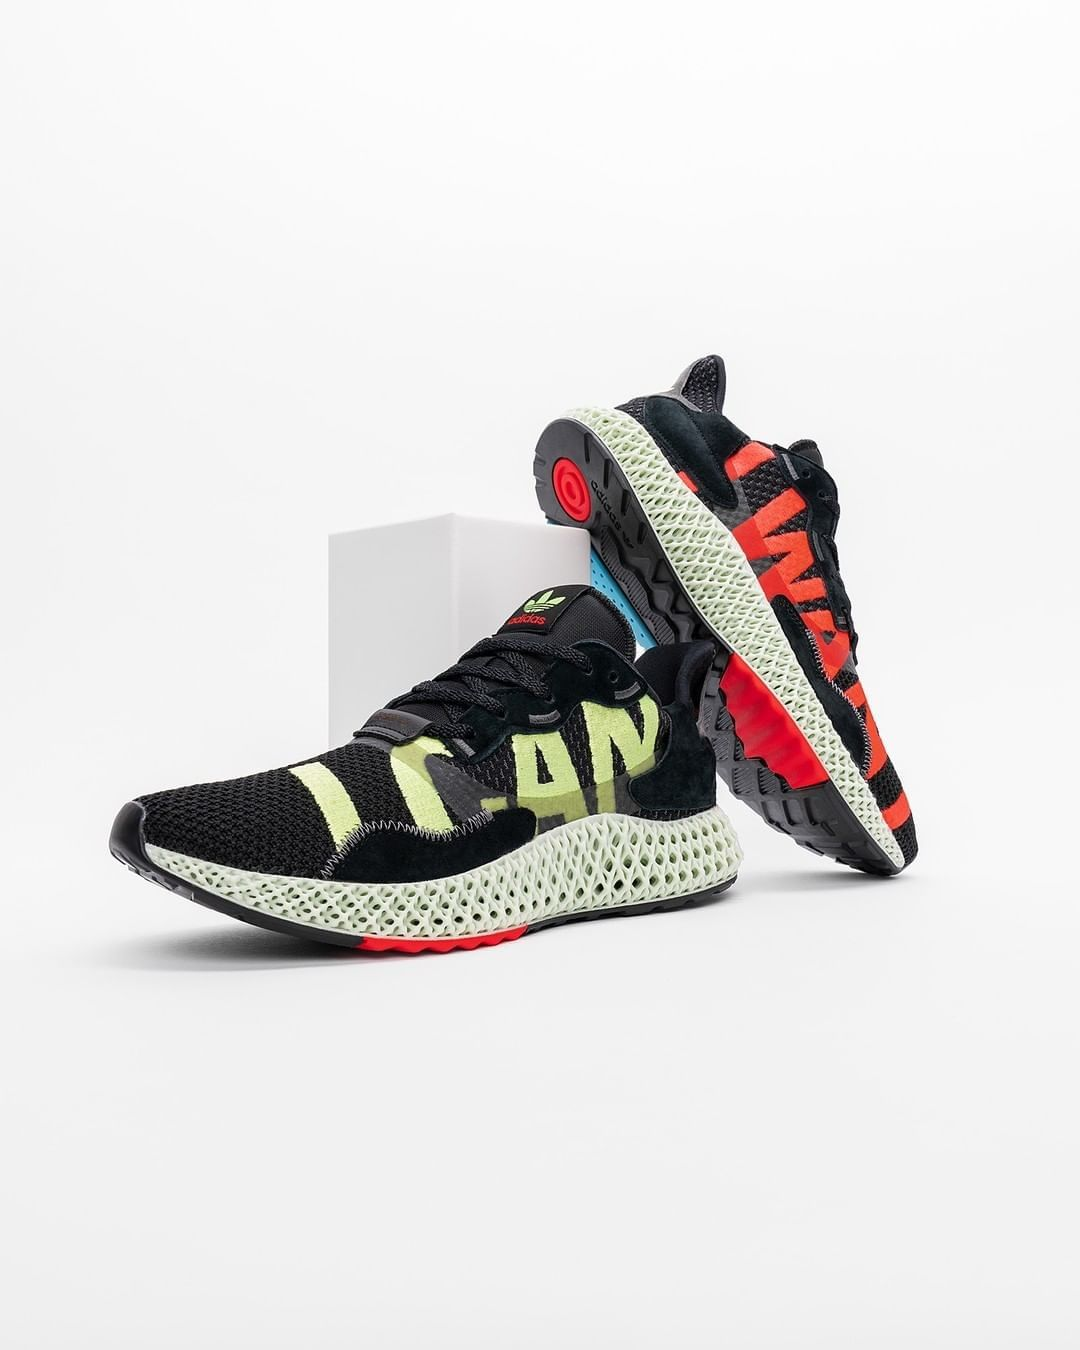 adidas-zx4000-4d-iwant-ican